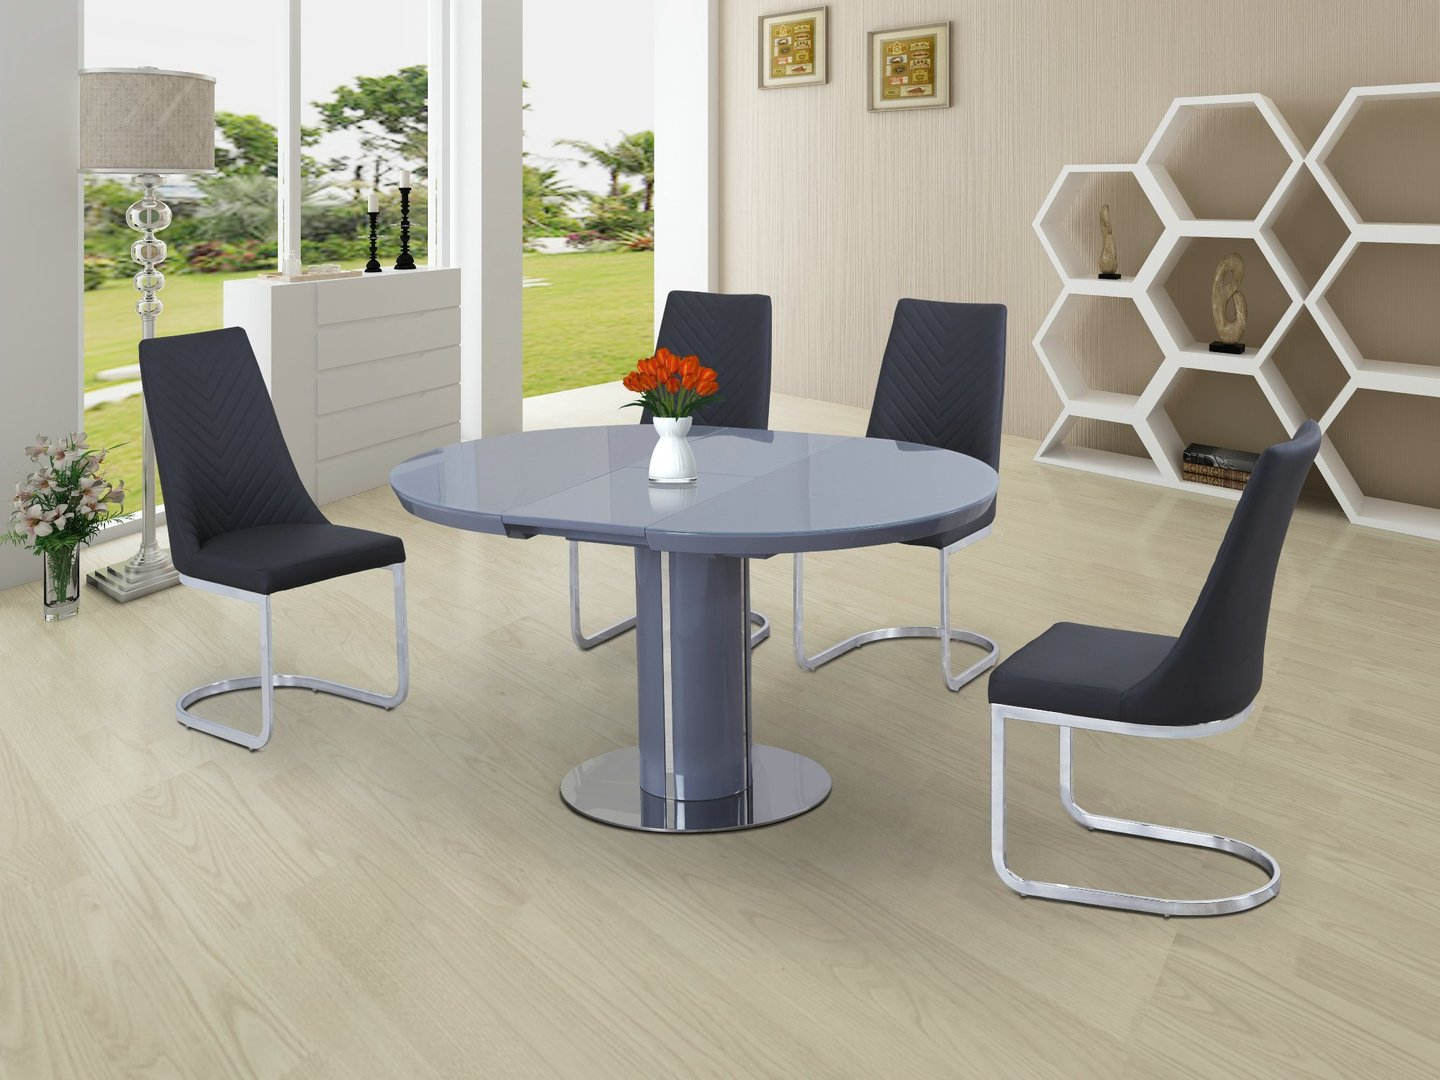 Round Grey Glass High Gloss Dining Table And 6 Chairs